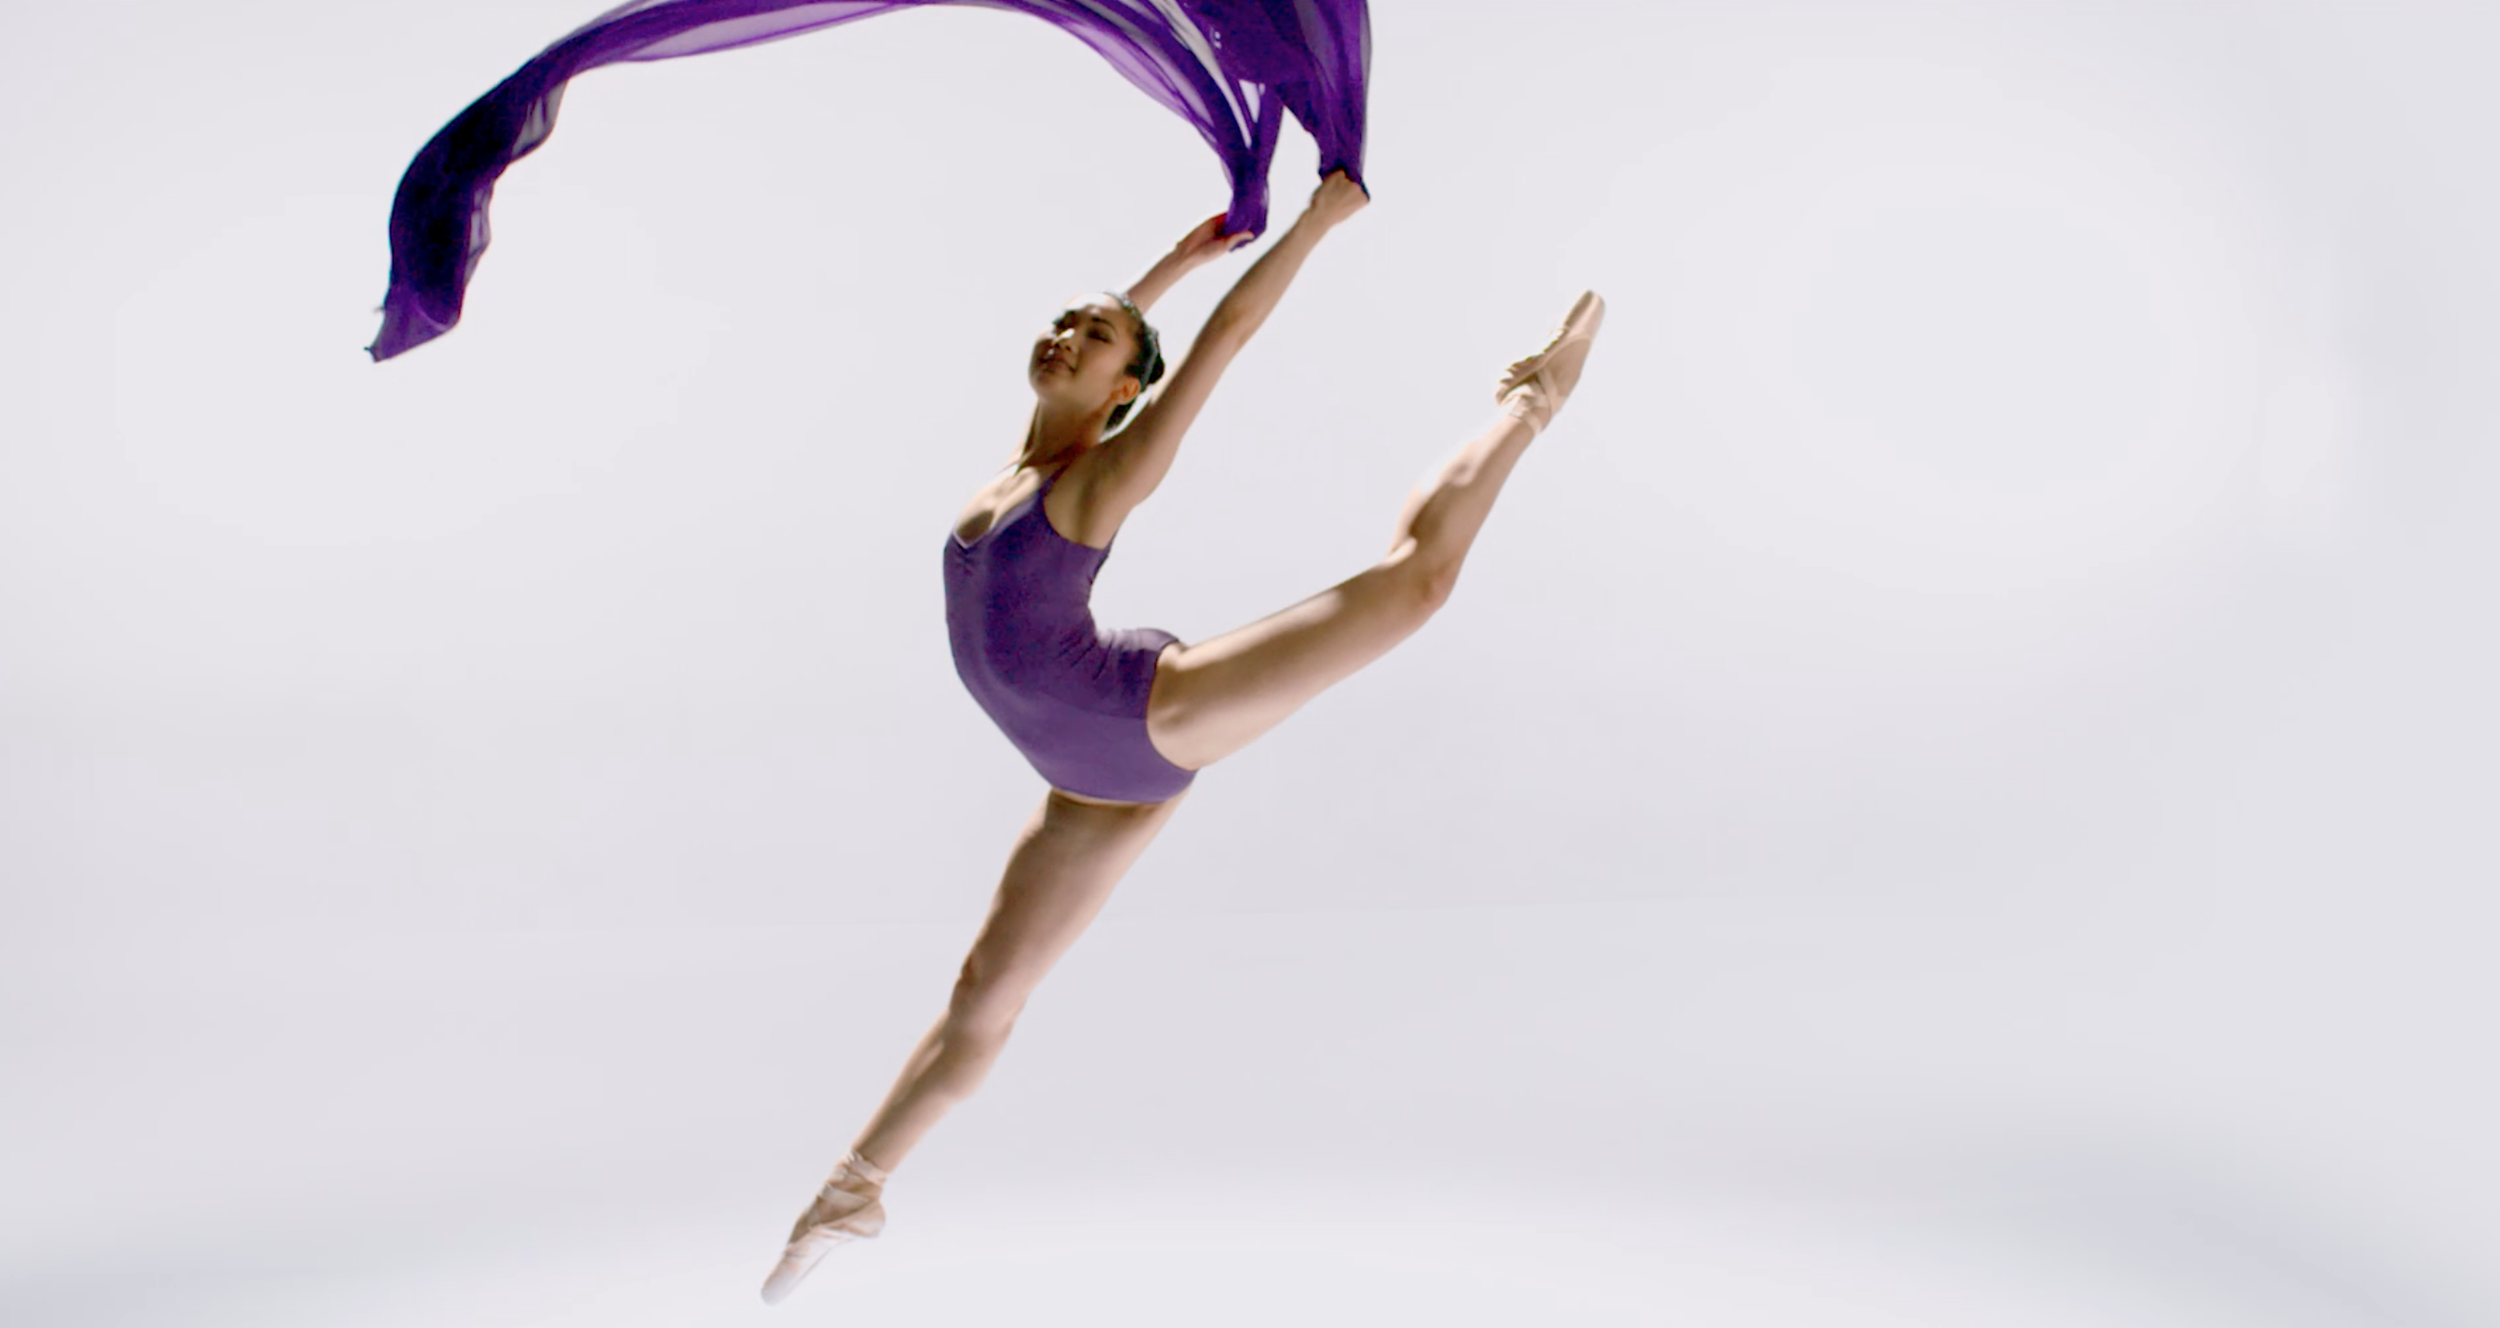 SPONSORSHIP: Drink Digital helped raise the profile of the 30 year partnership with the Australian Ballet for the 2014 Telstra Ballet Dancer of the Year Awards.